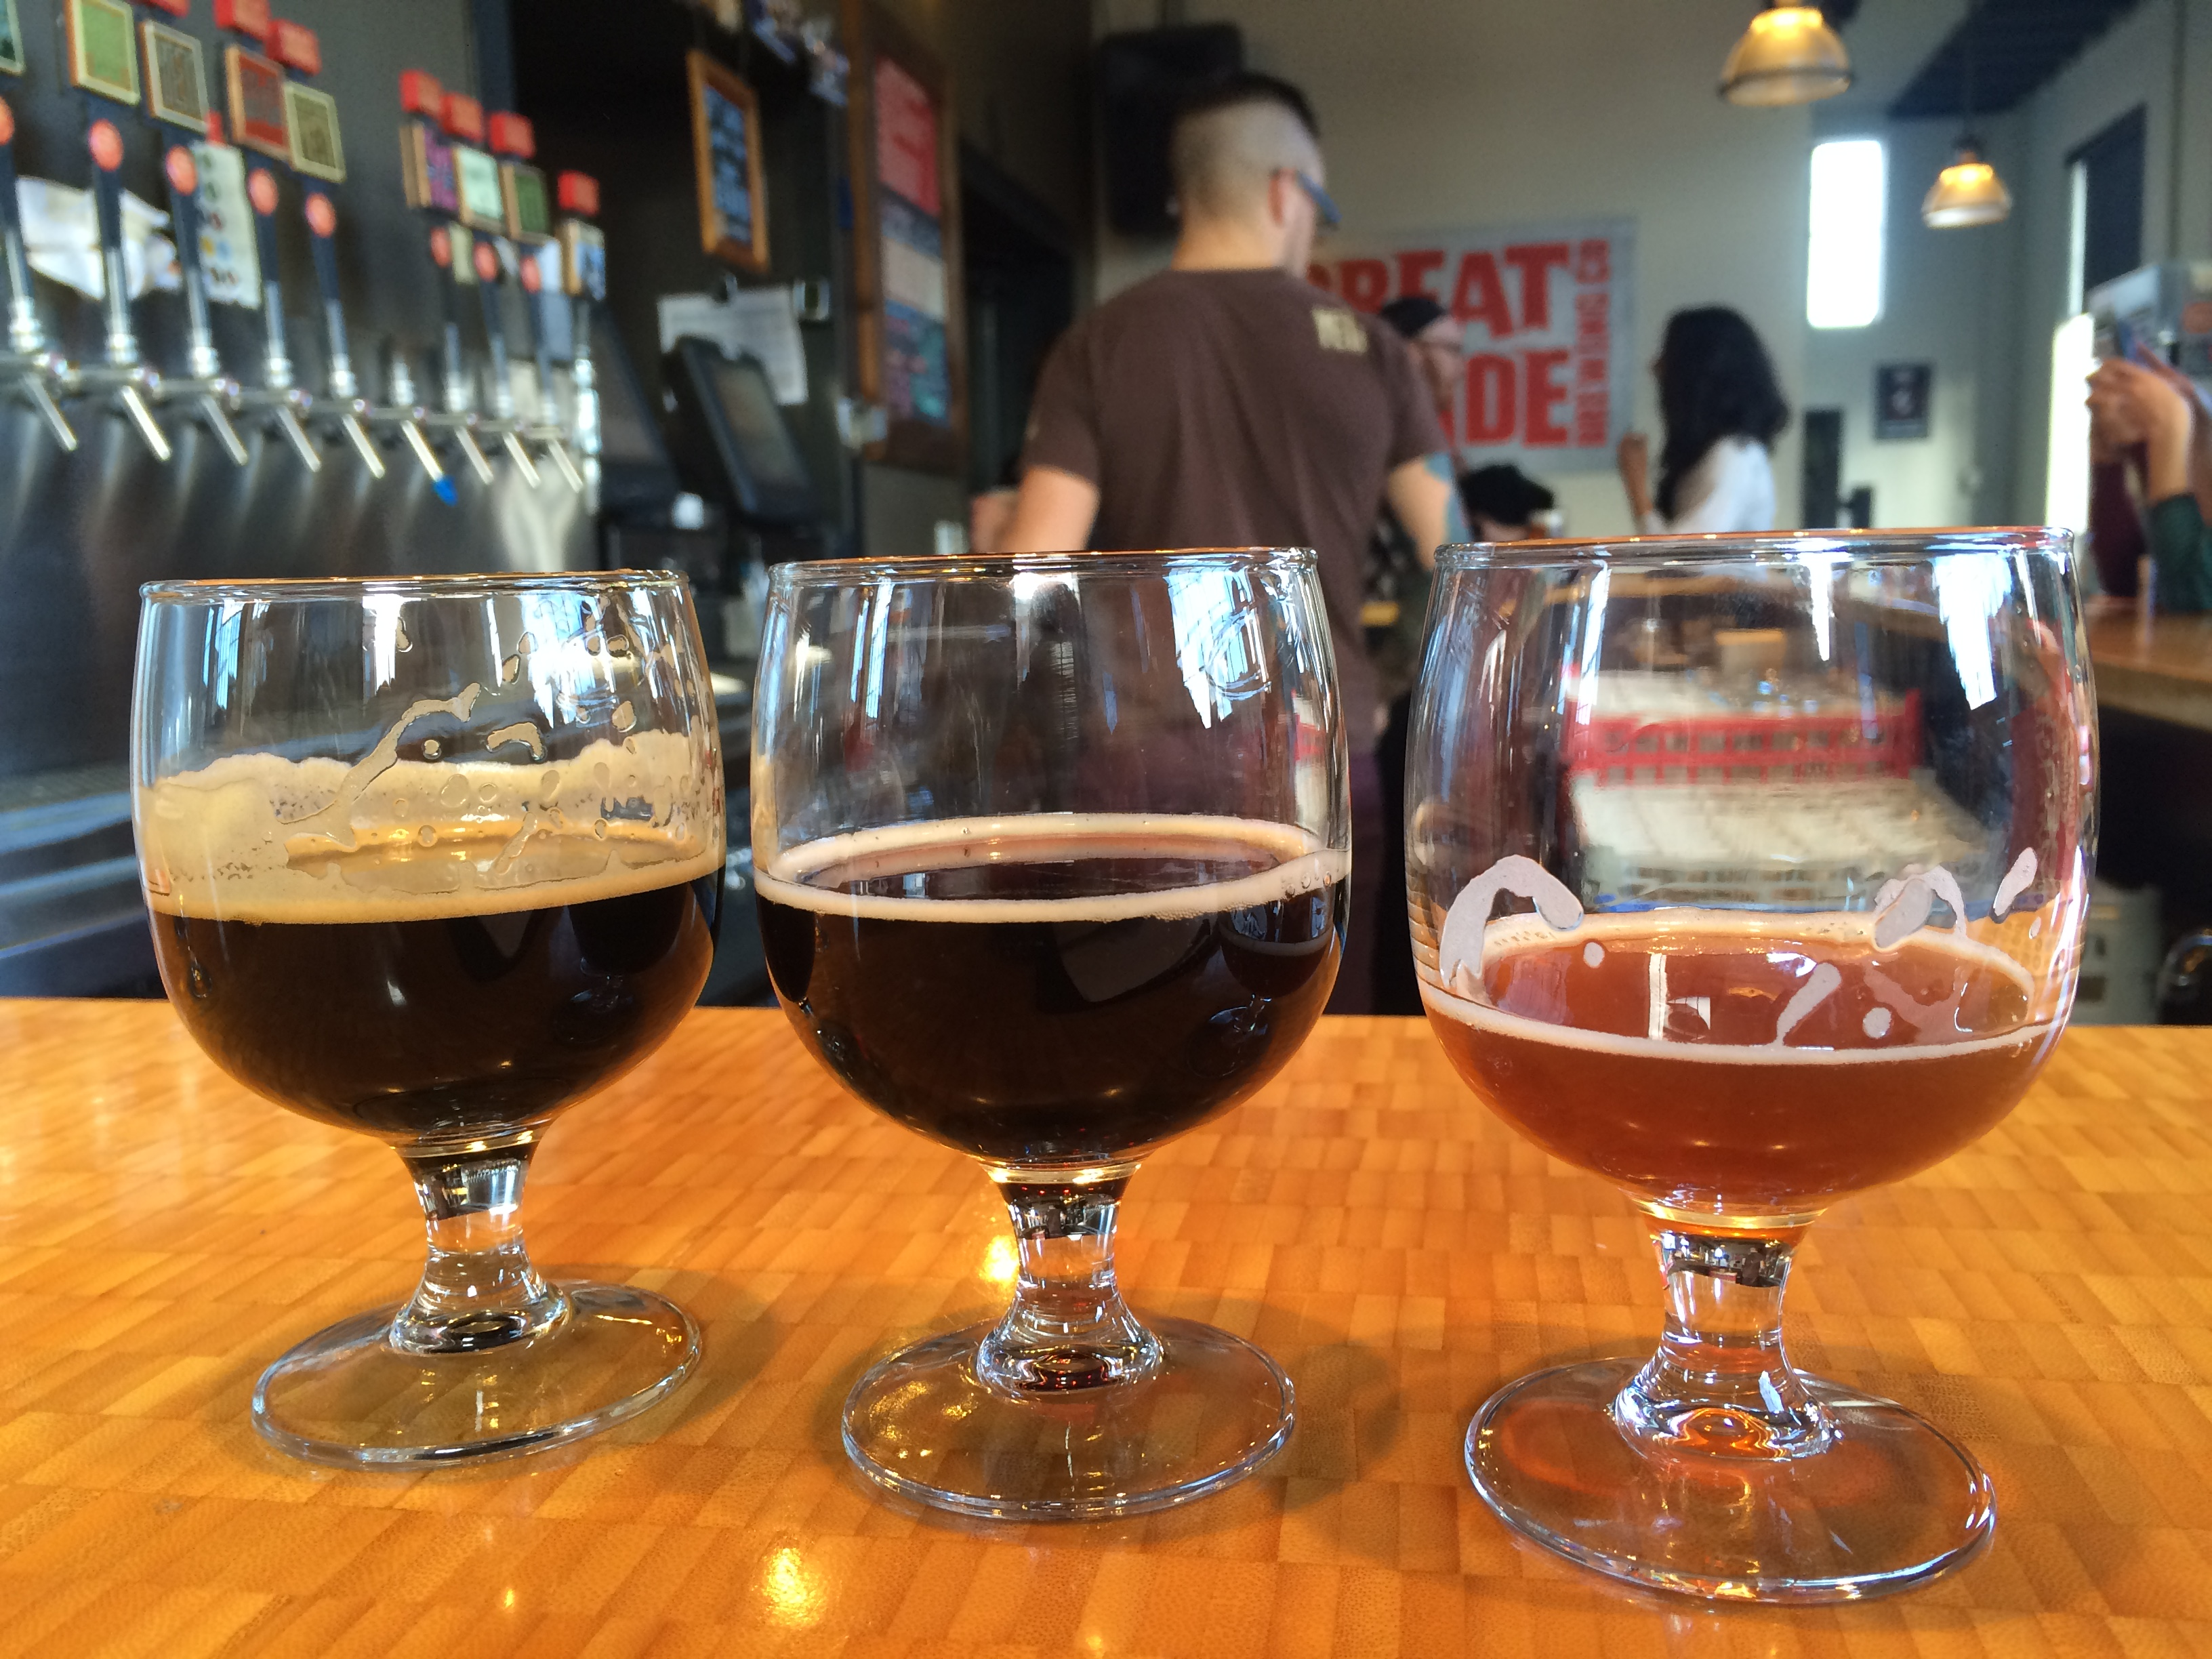 beer-the_great_divide-denver-co-microbrewery-bar-tf_tour__33_